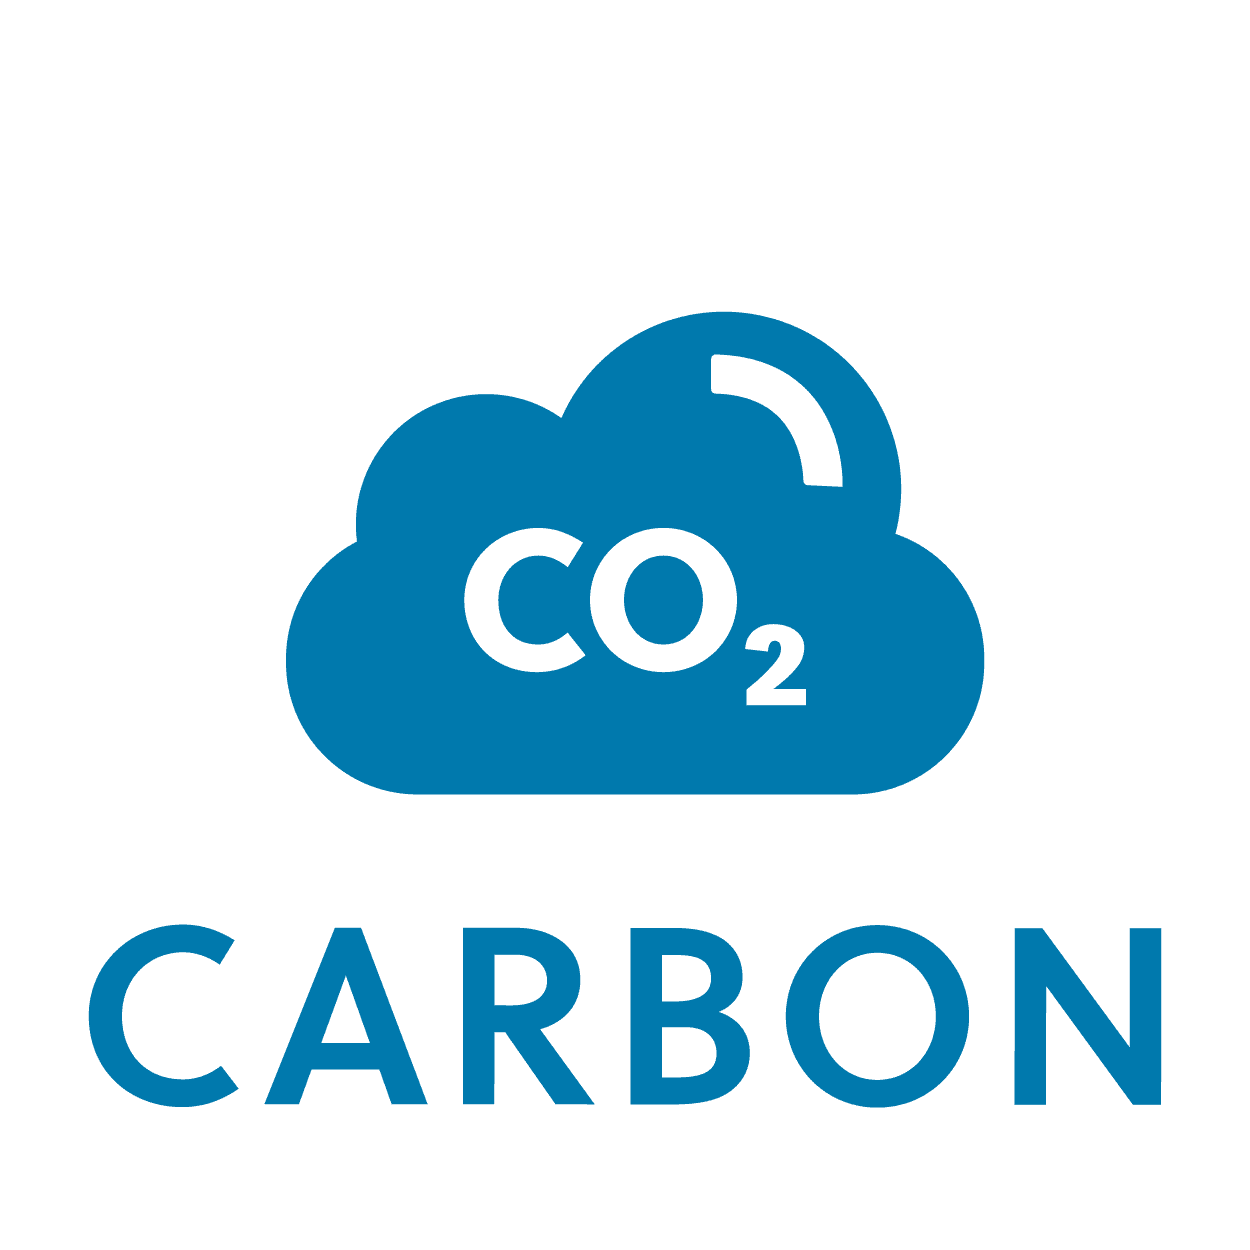 impact_solutions_carbonicon-01